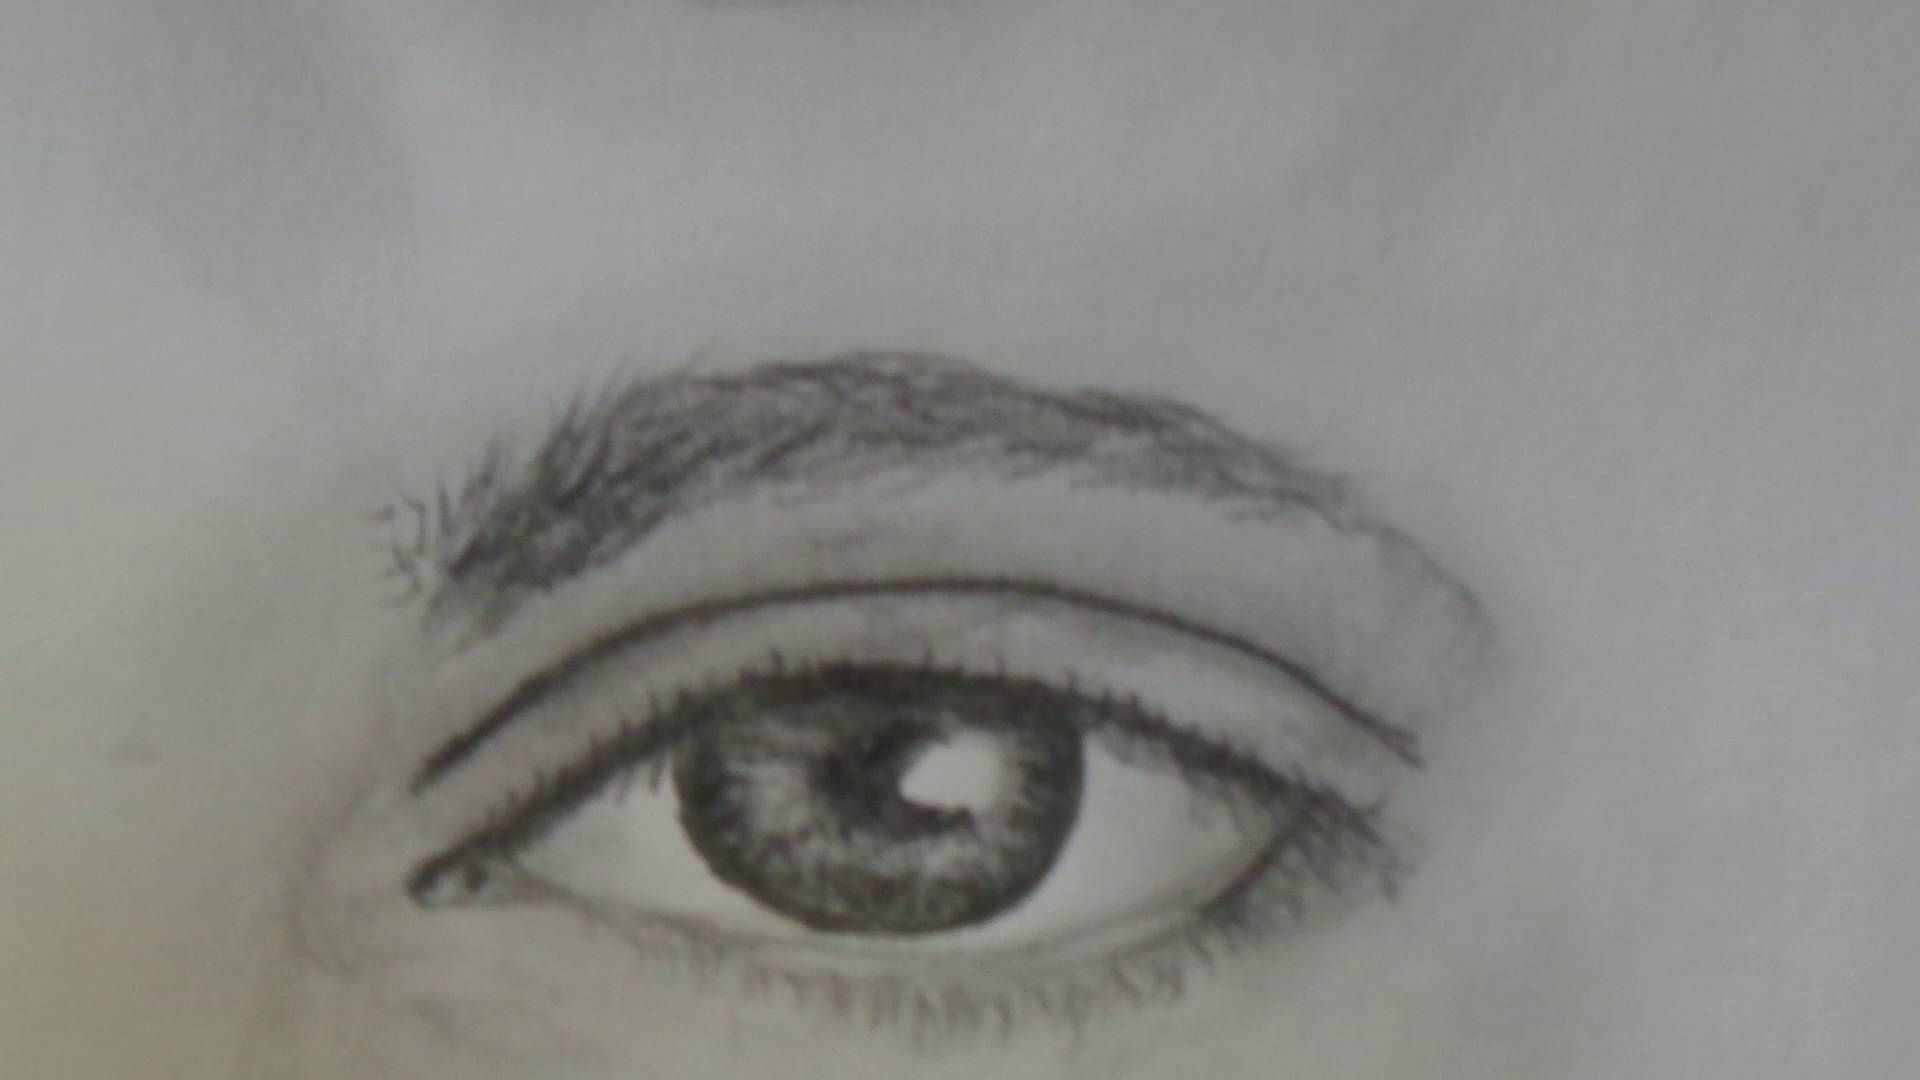 How To Draw A Realistic Male Eye For Beginners Step By Step With Pencil Eye Drawing Tutorials Eye Drawing Male Eyes